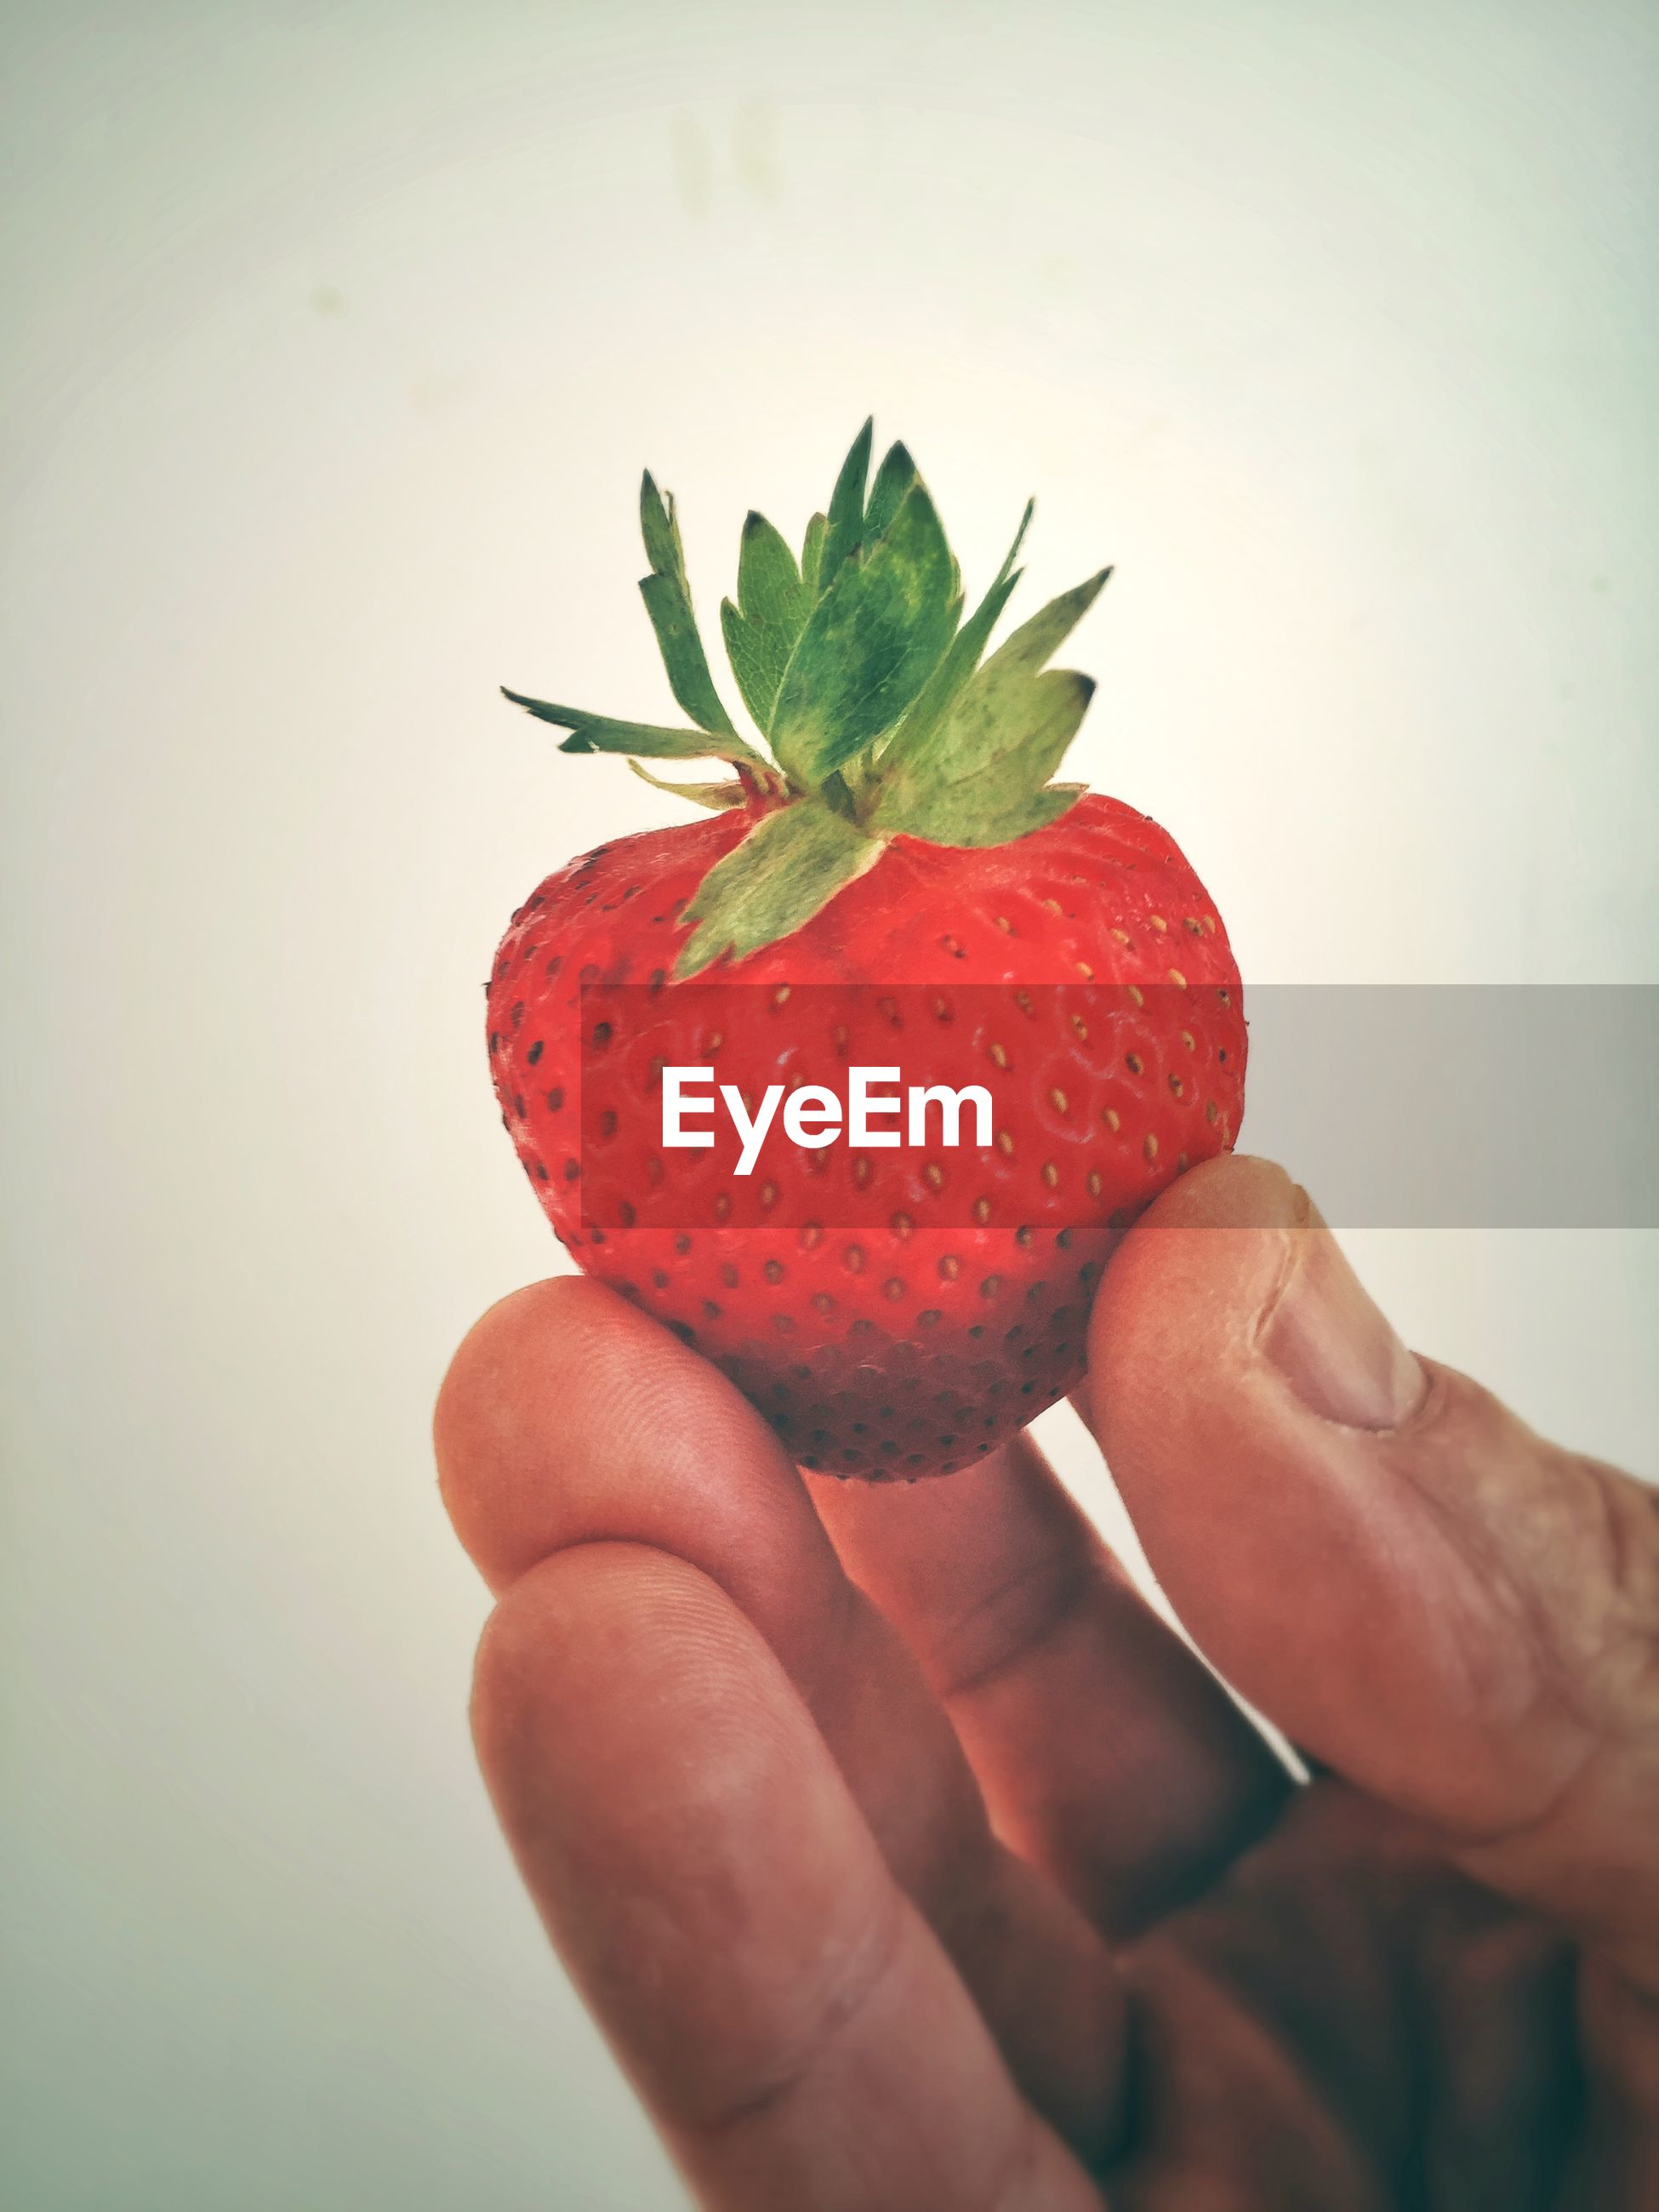 CLOSE-UP OF HAND HOLDING STRAWBERRY WITH STRAWBERRIES